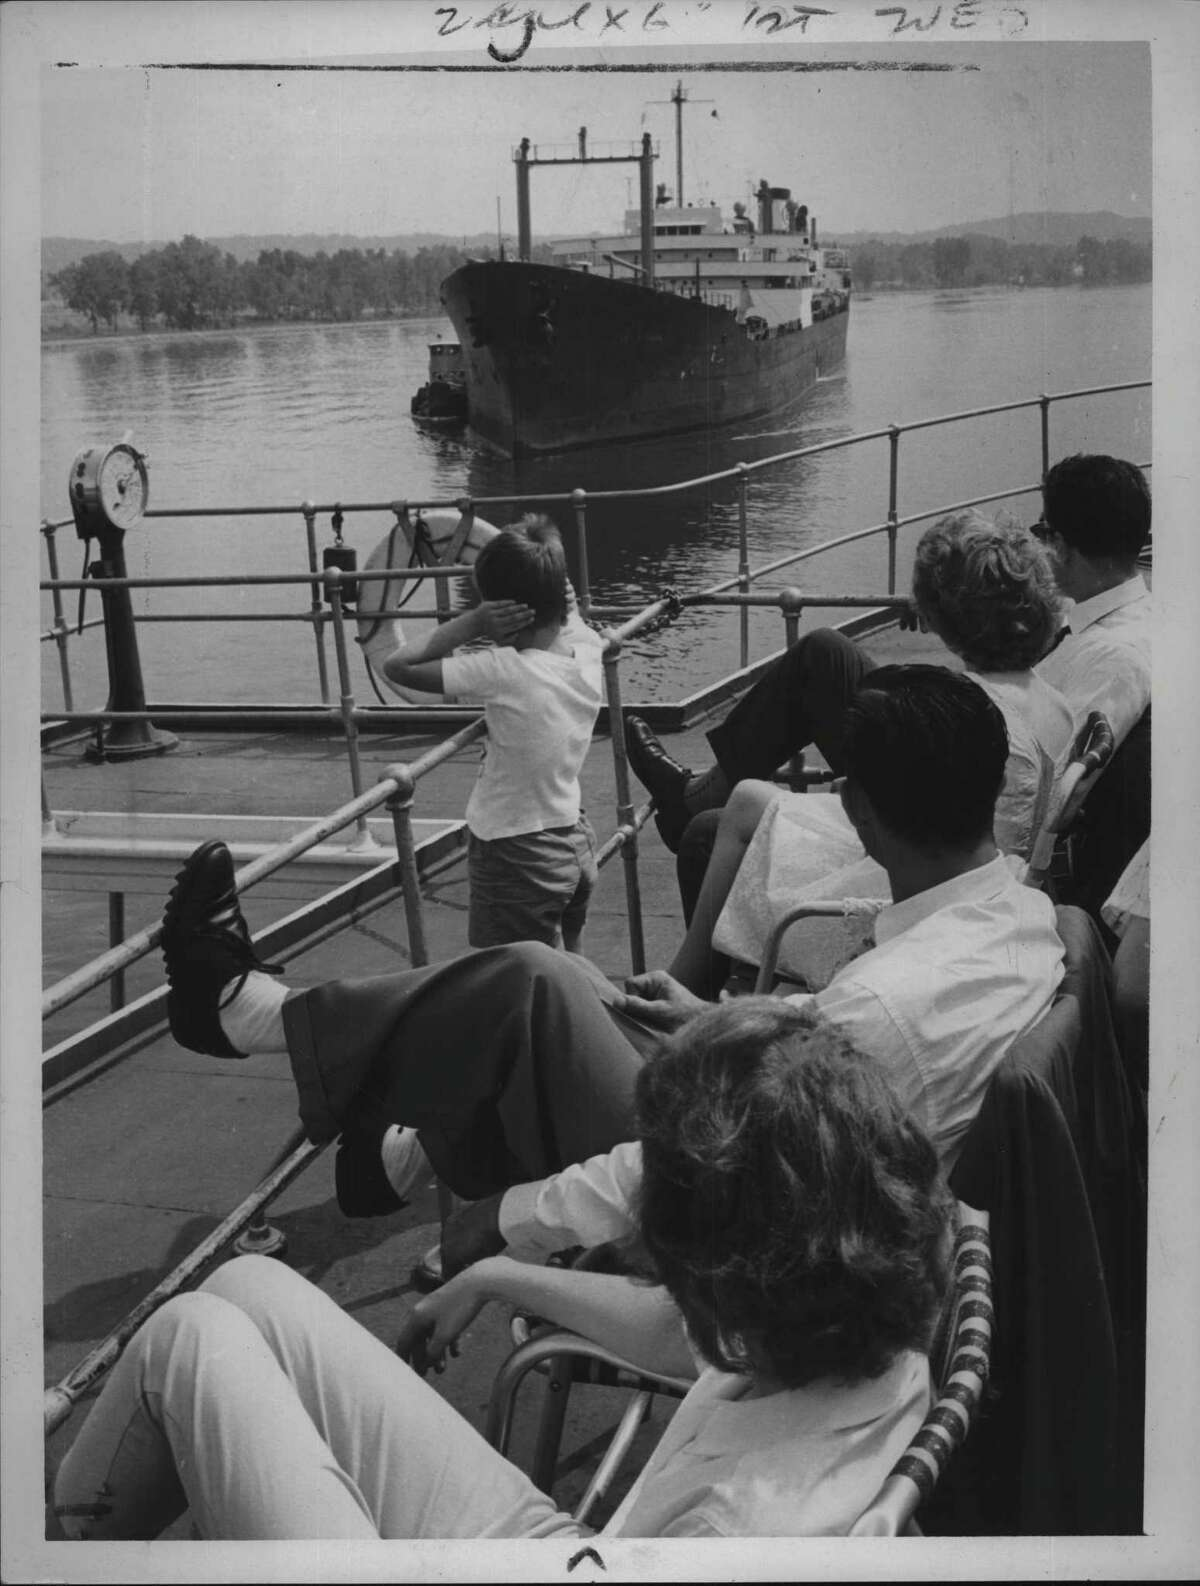 Passengers on the dayliner a€œAlexander Hamiltona€ watch as the vessel passes a tanker on a Sunday cruise on the Hudson River in early September 1961. (Times Union Archive)